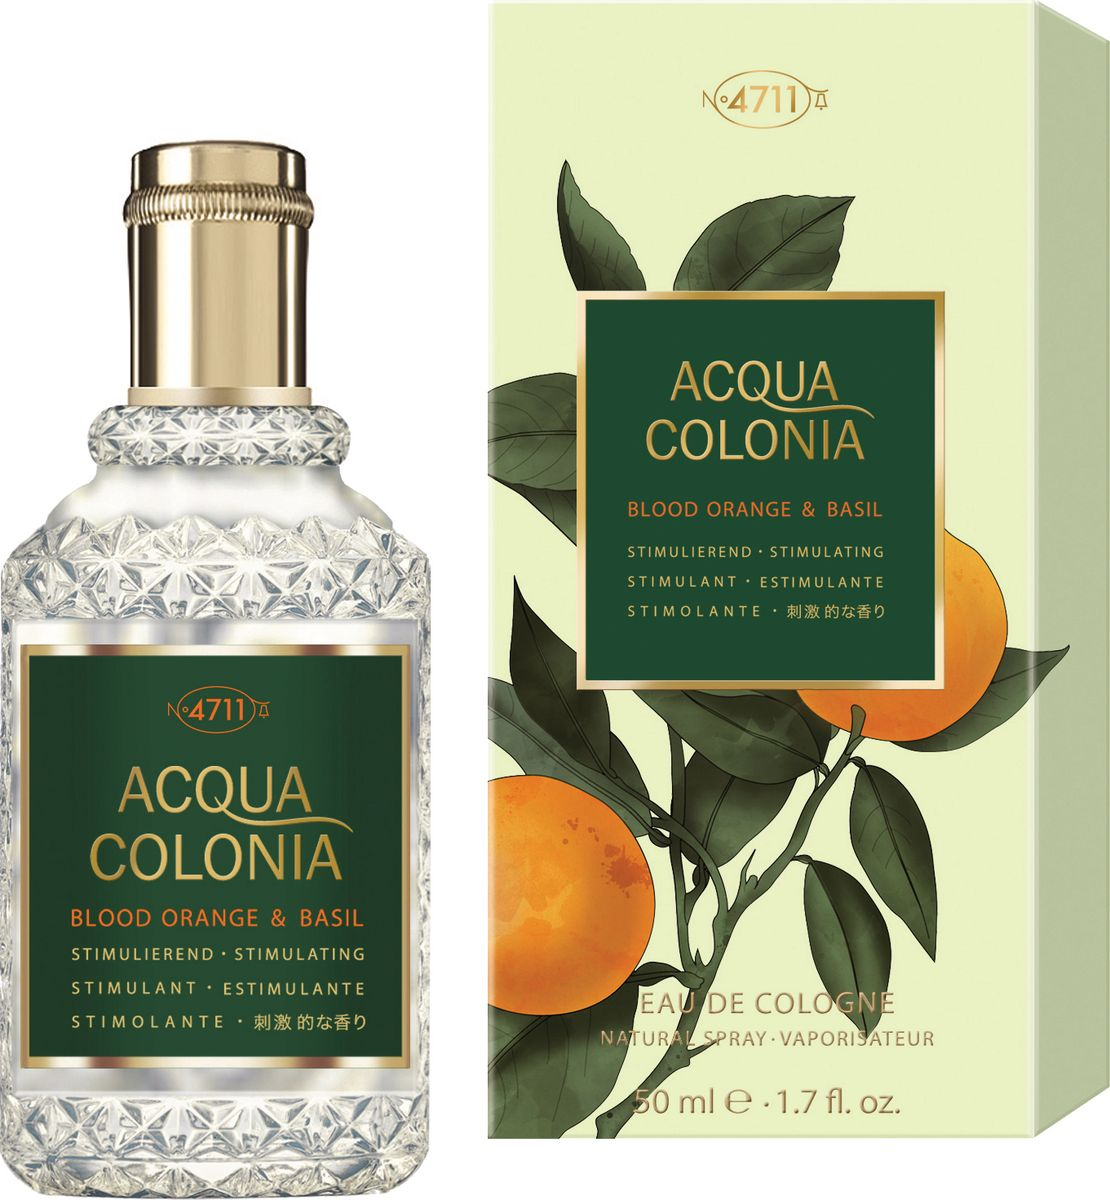 4711 Acqua Colonia Stimulating Blood Orange & Basil Одеколон, 50 мл